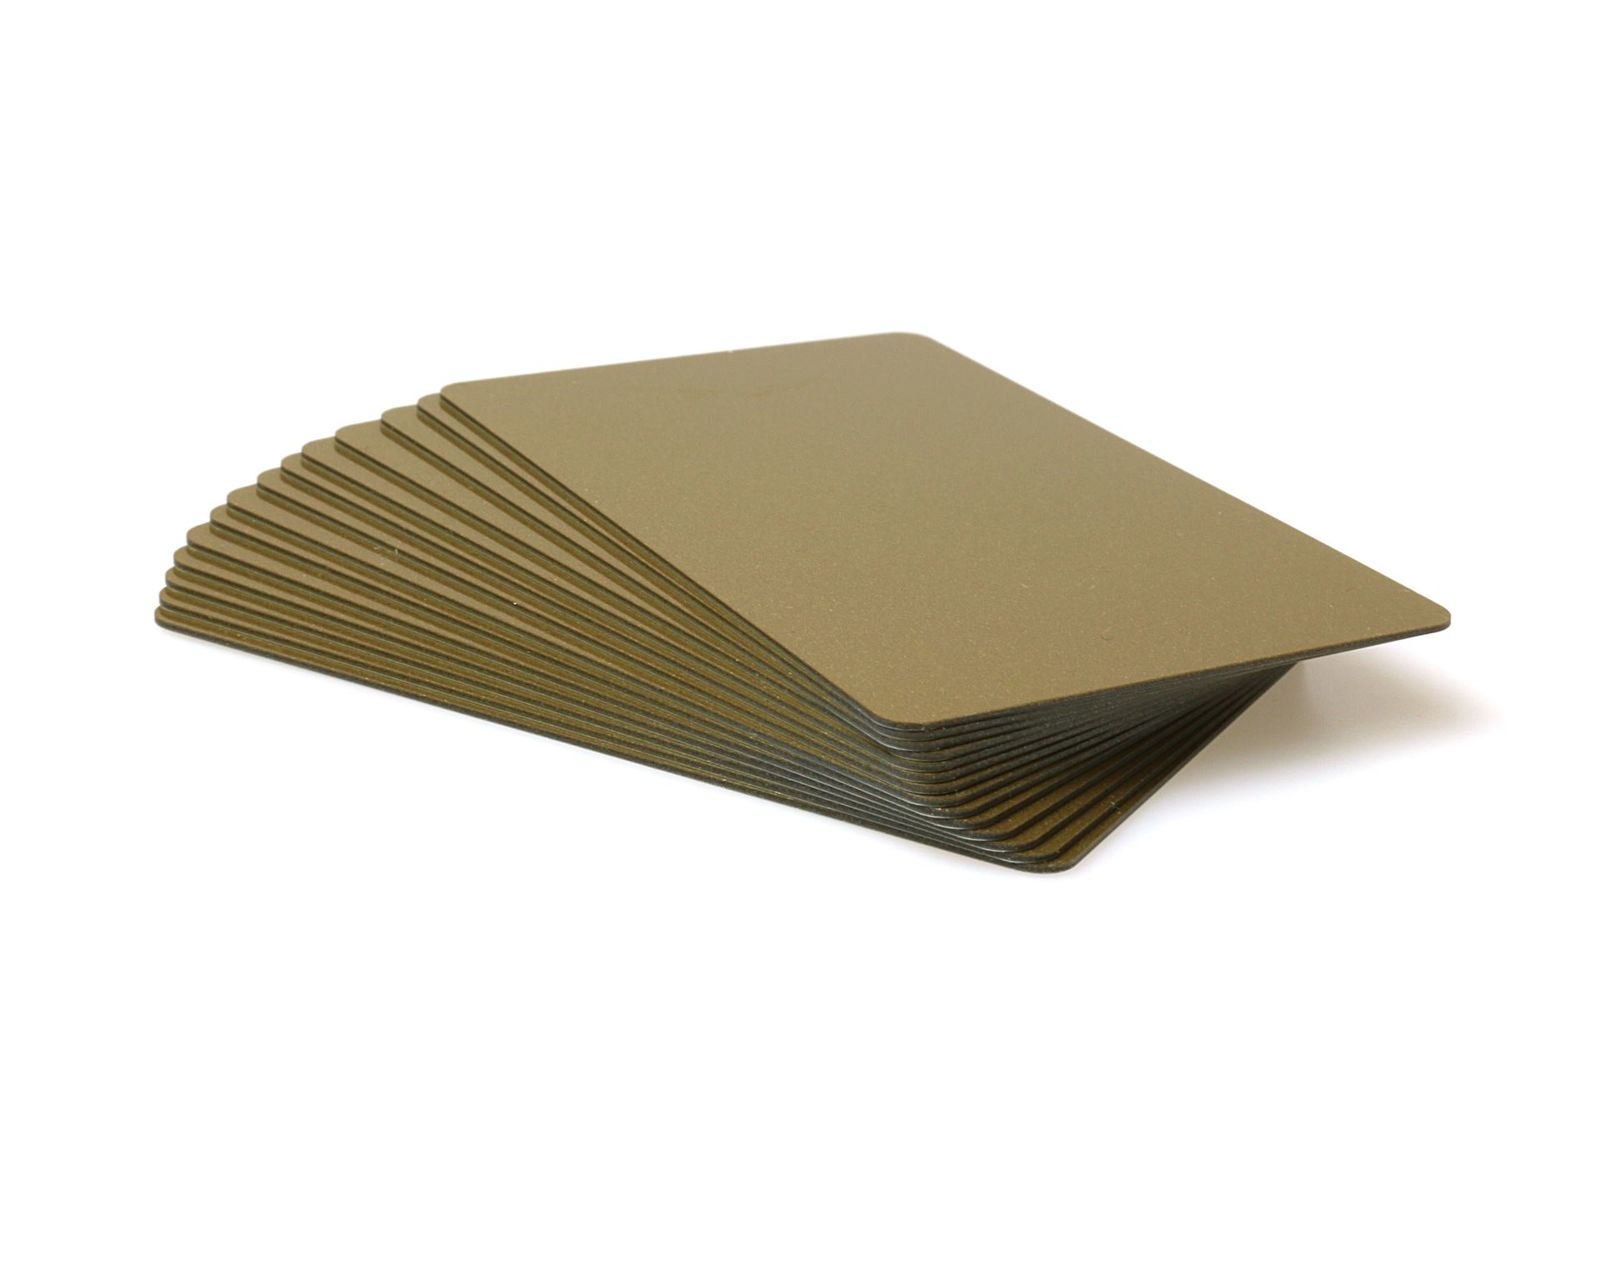 Light Gold Coloured Cards 100 Pack - 760 Micron